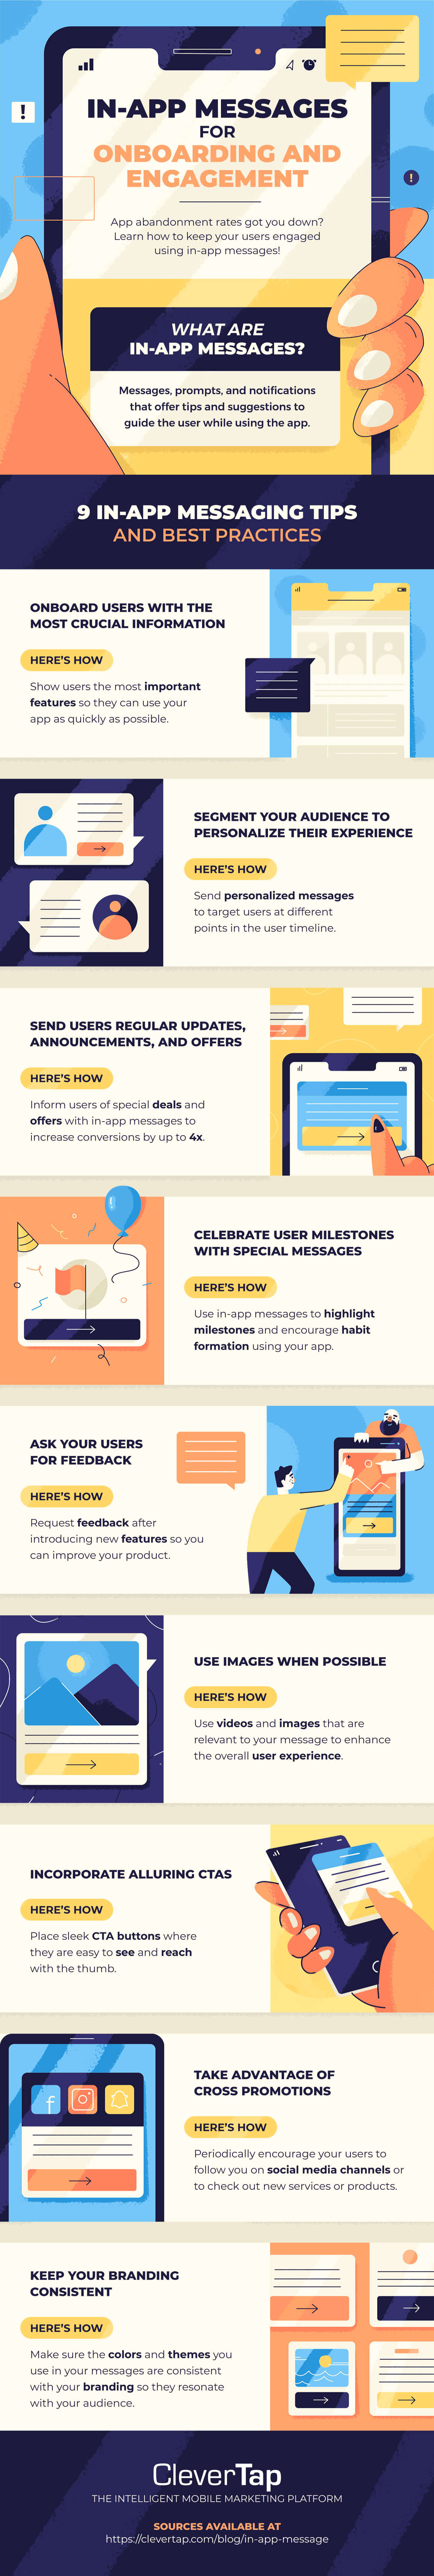 infographic with tips for mobile marketers to master in-app messages